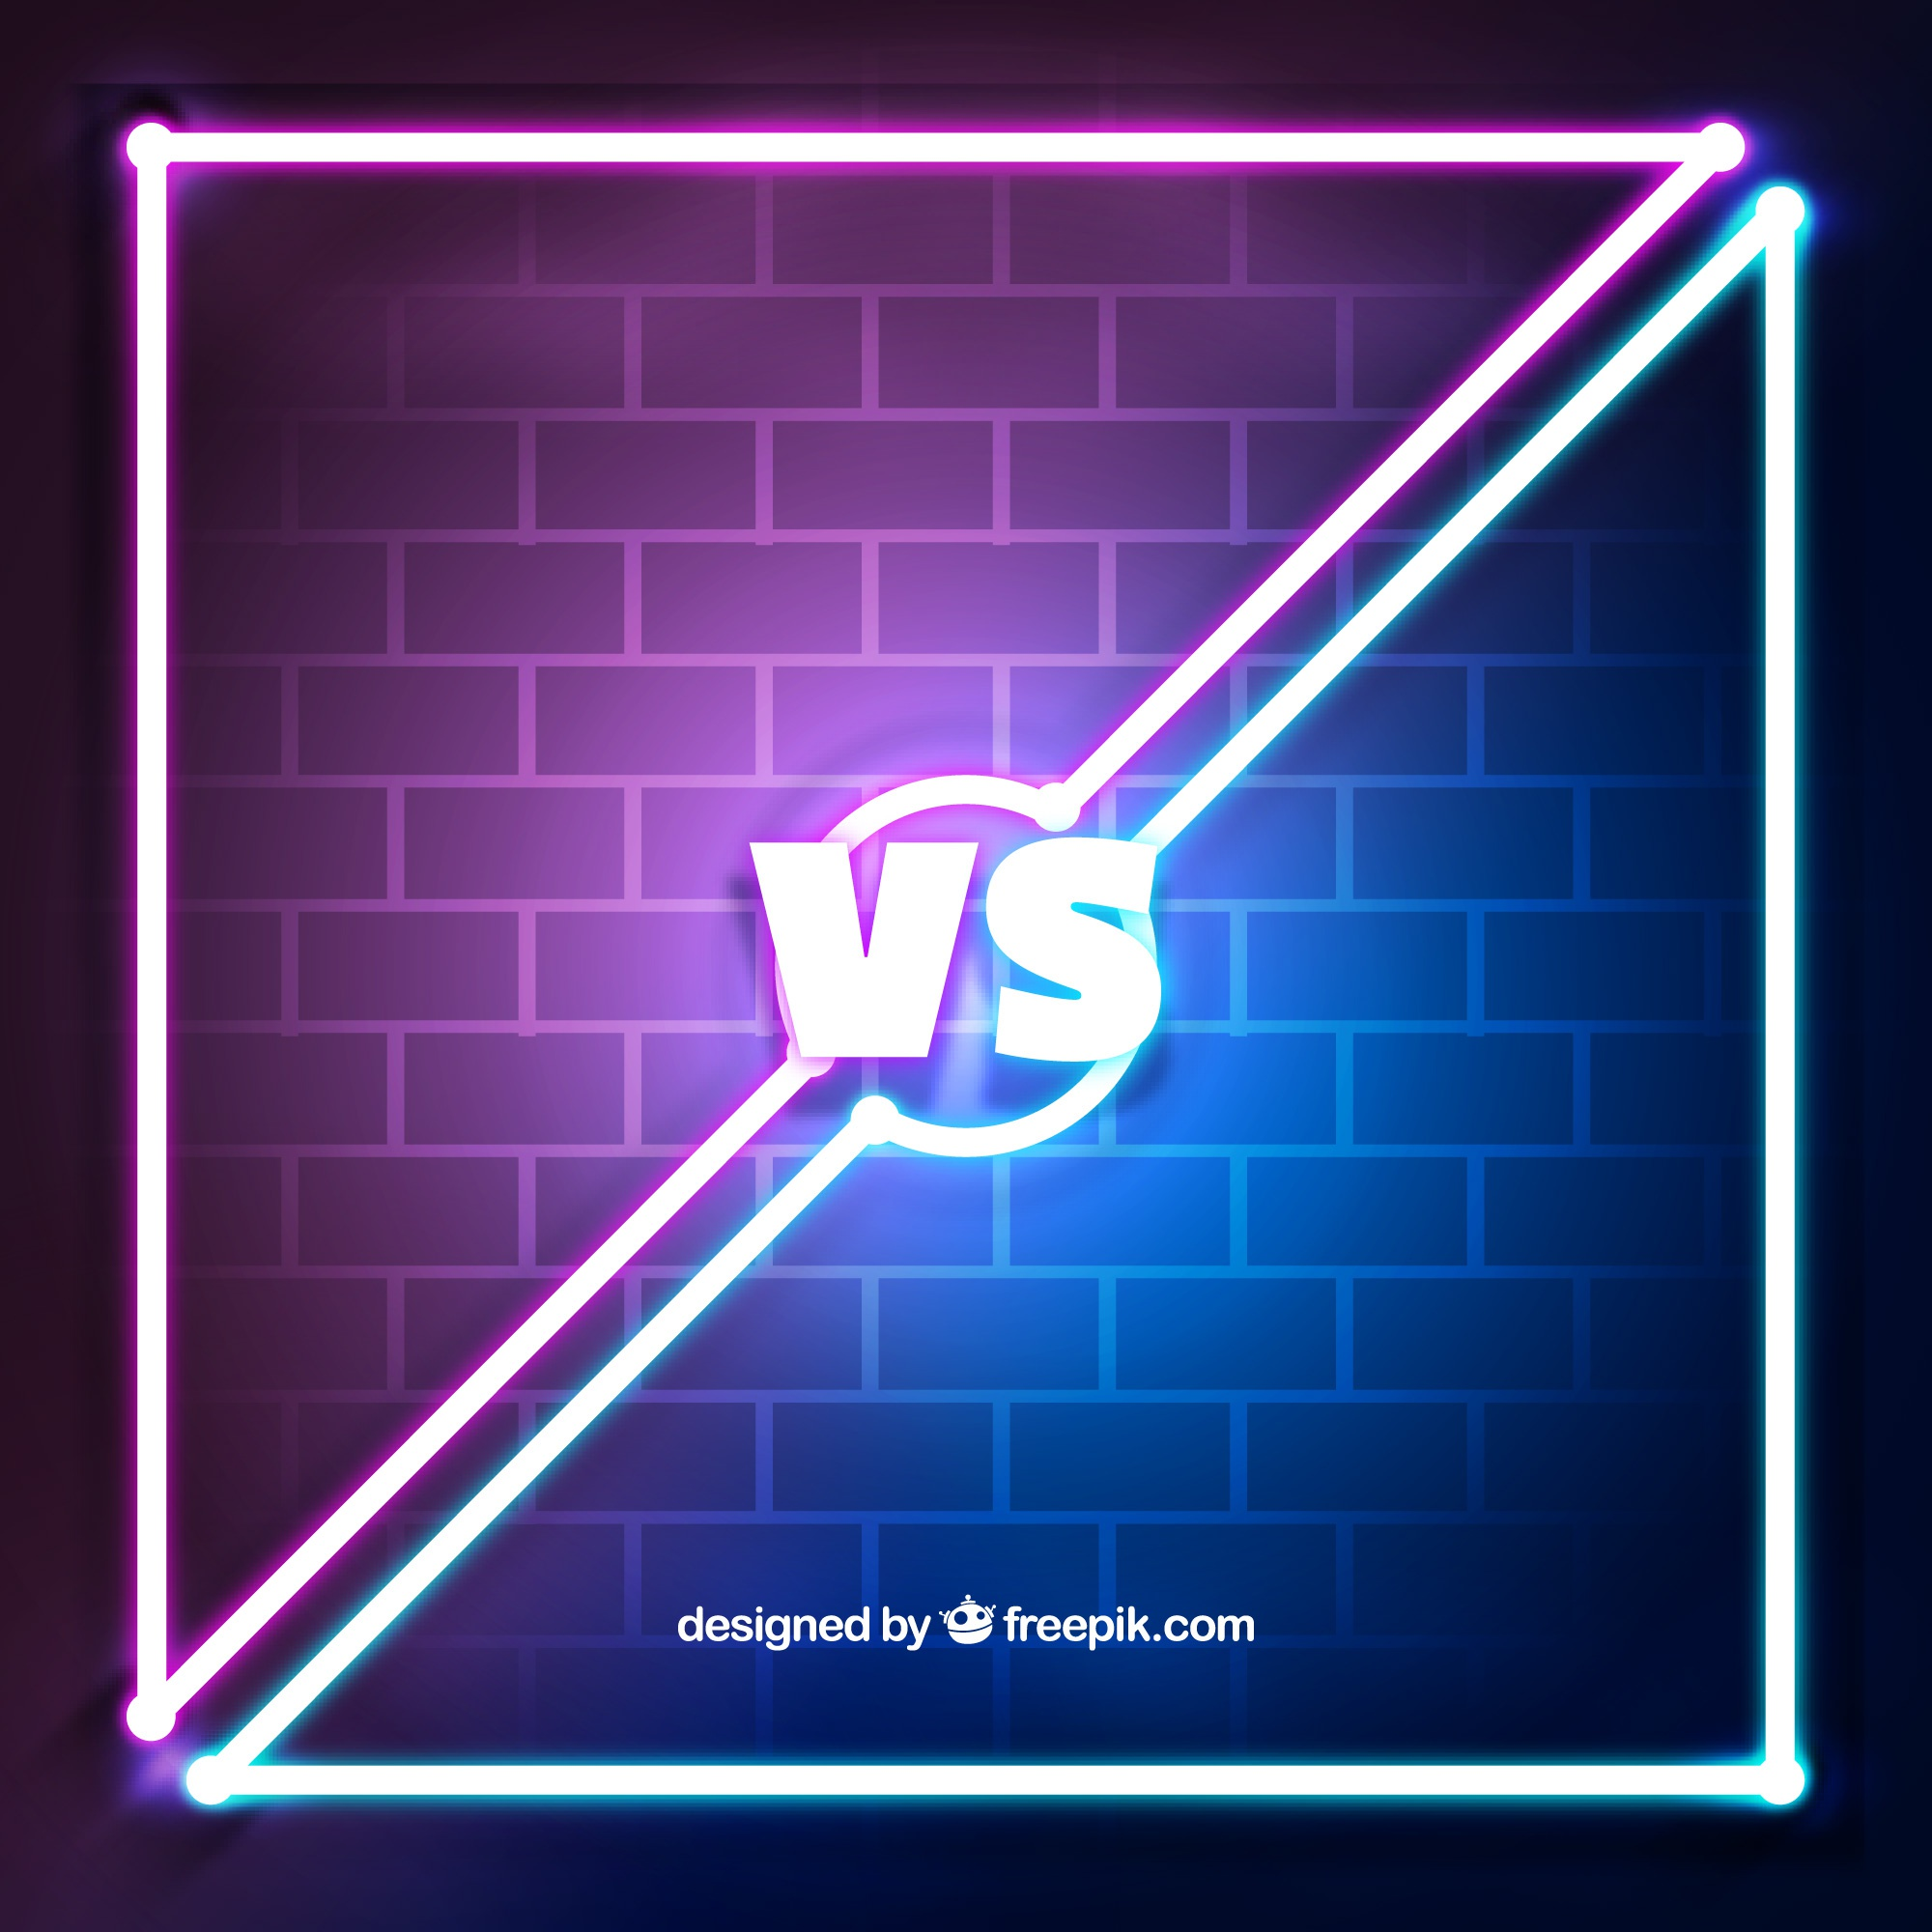 Versus background with neon lights and wall